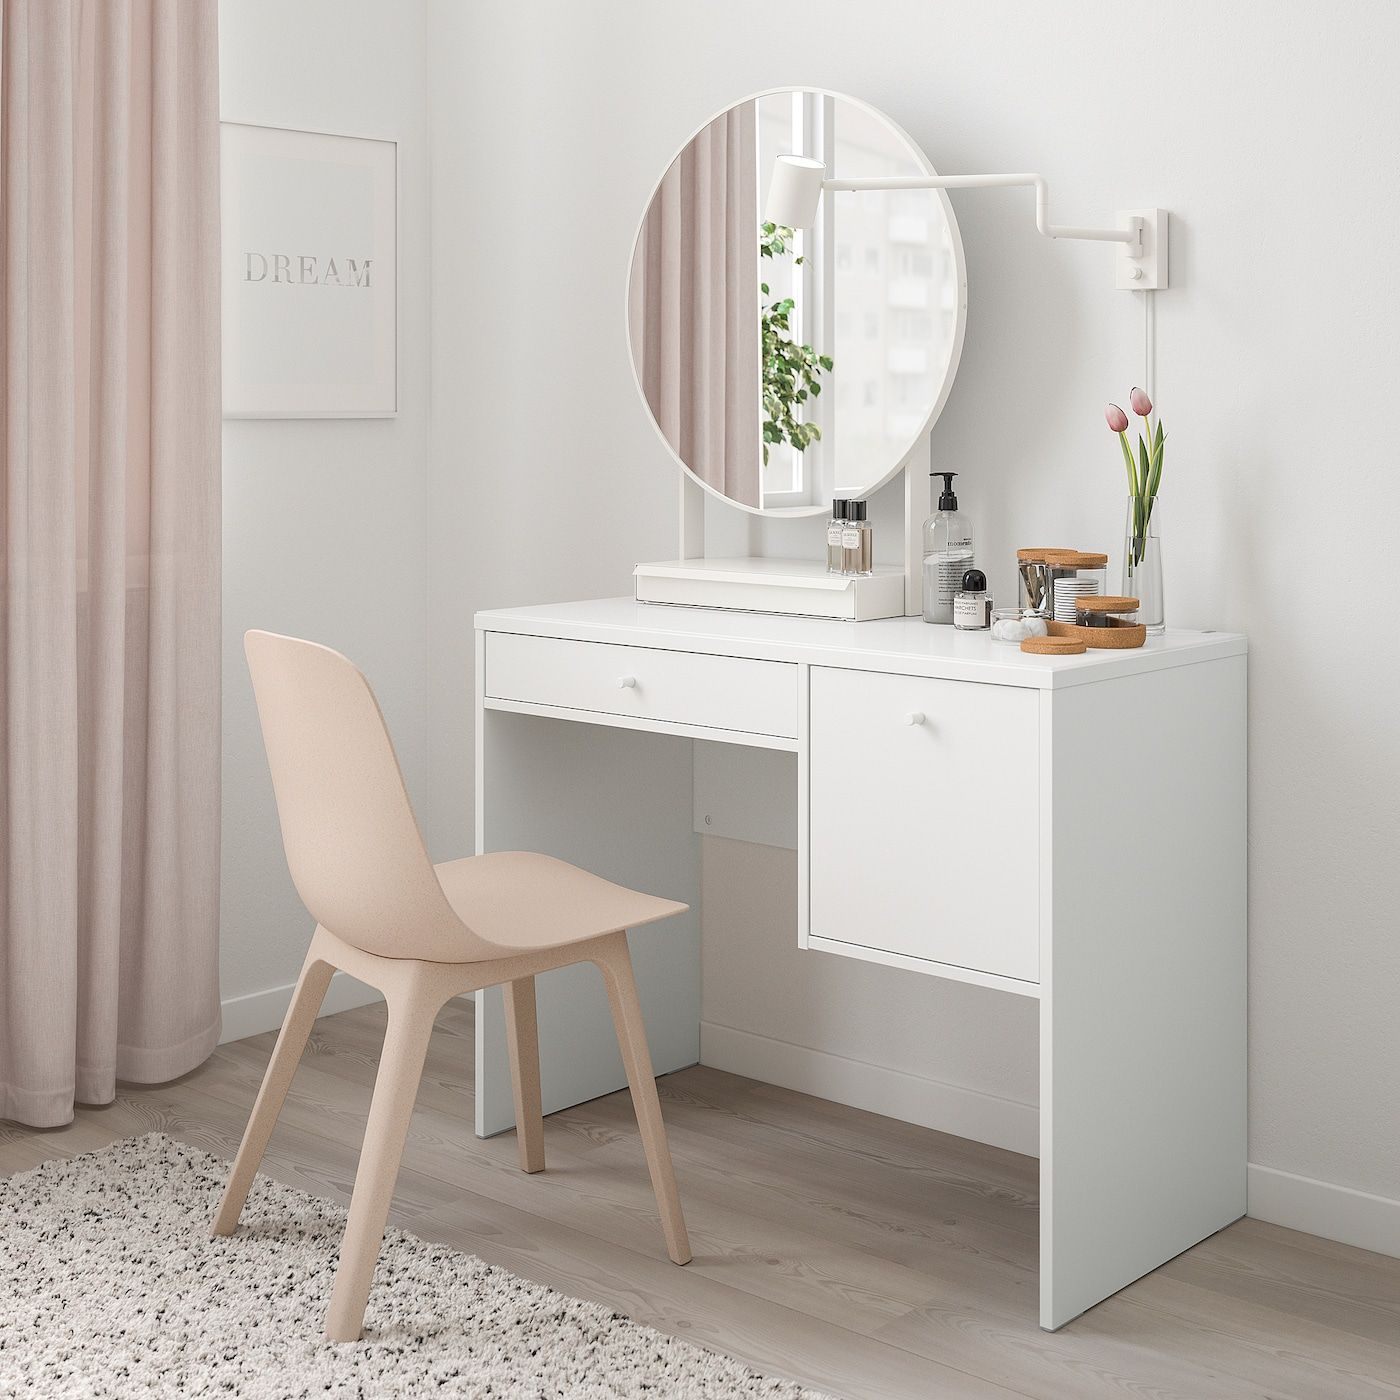 SYVDE Dressing table, white - IKEA